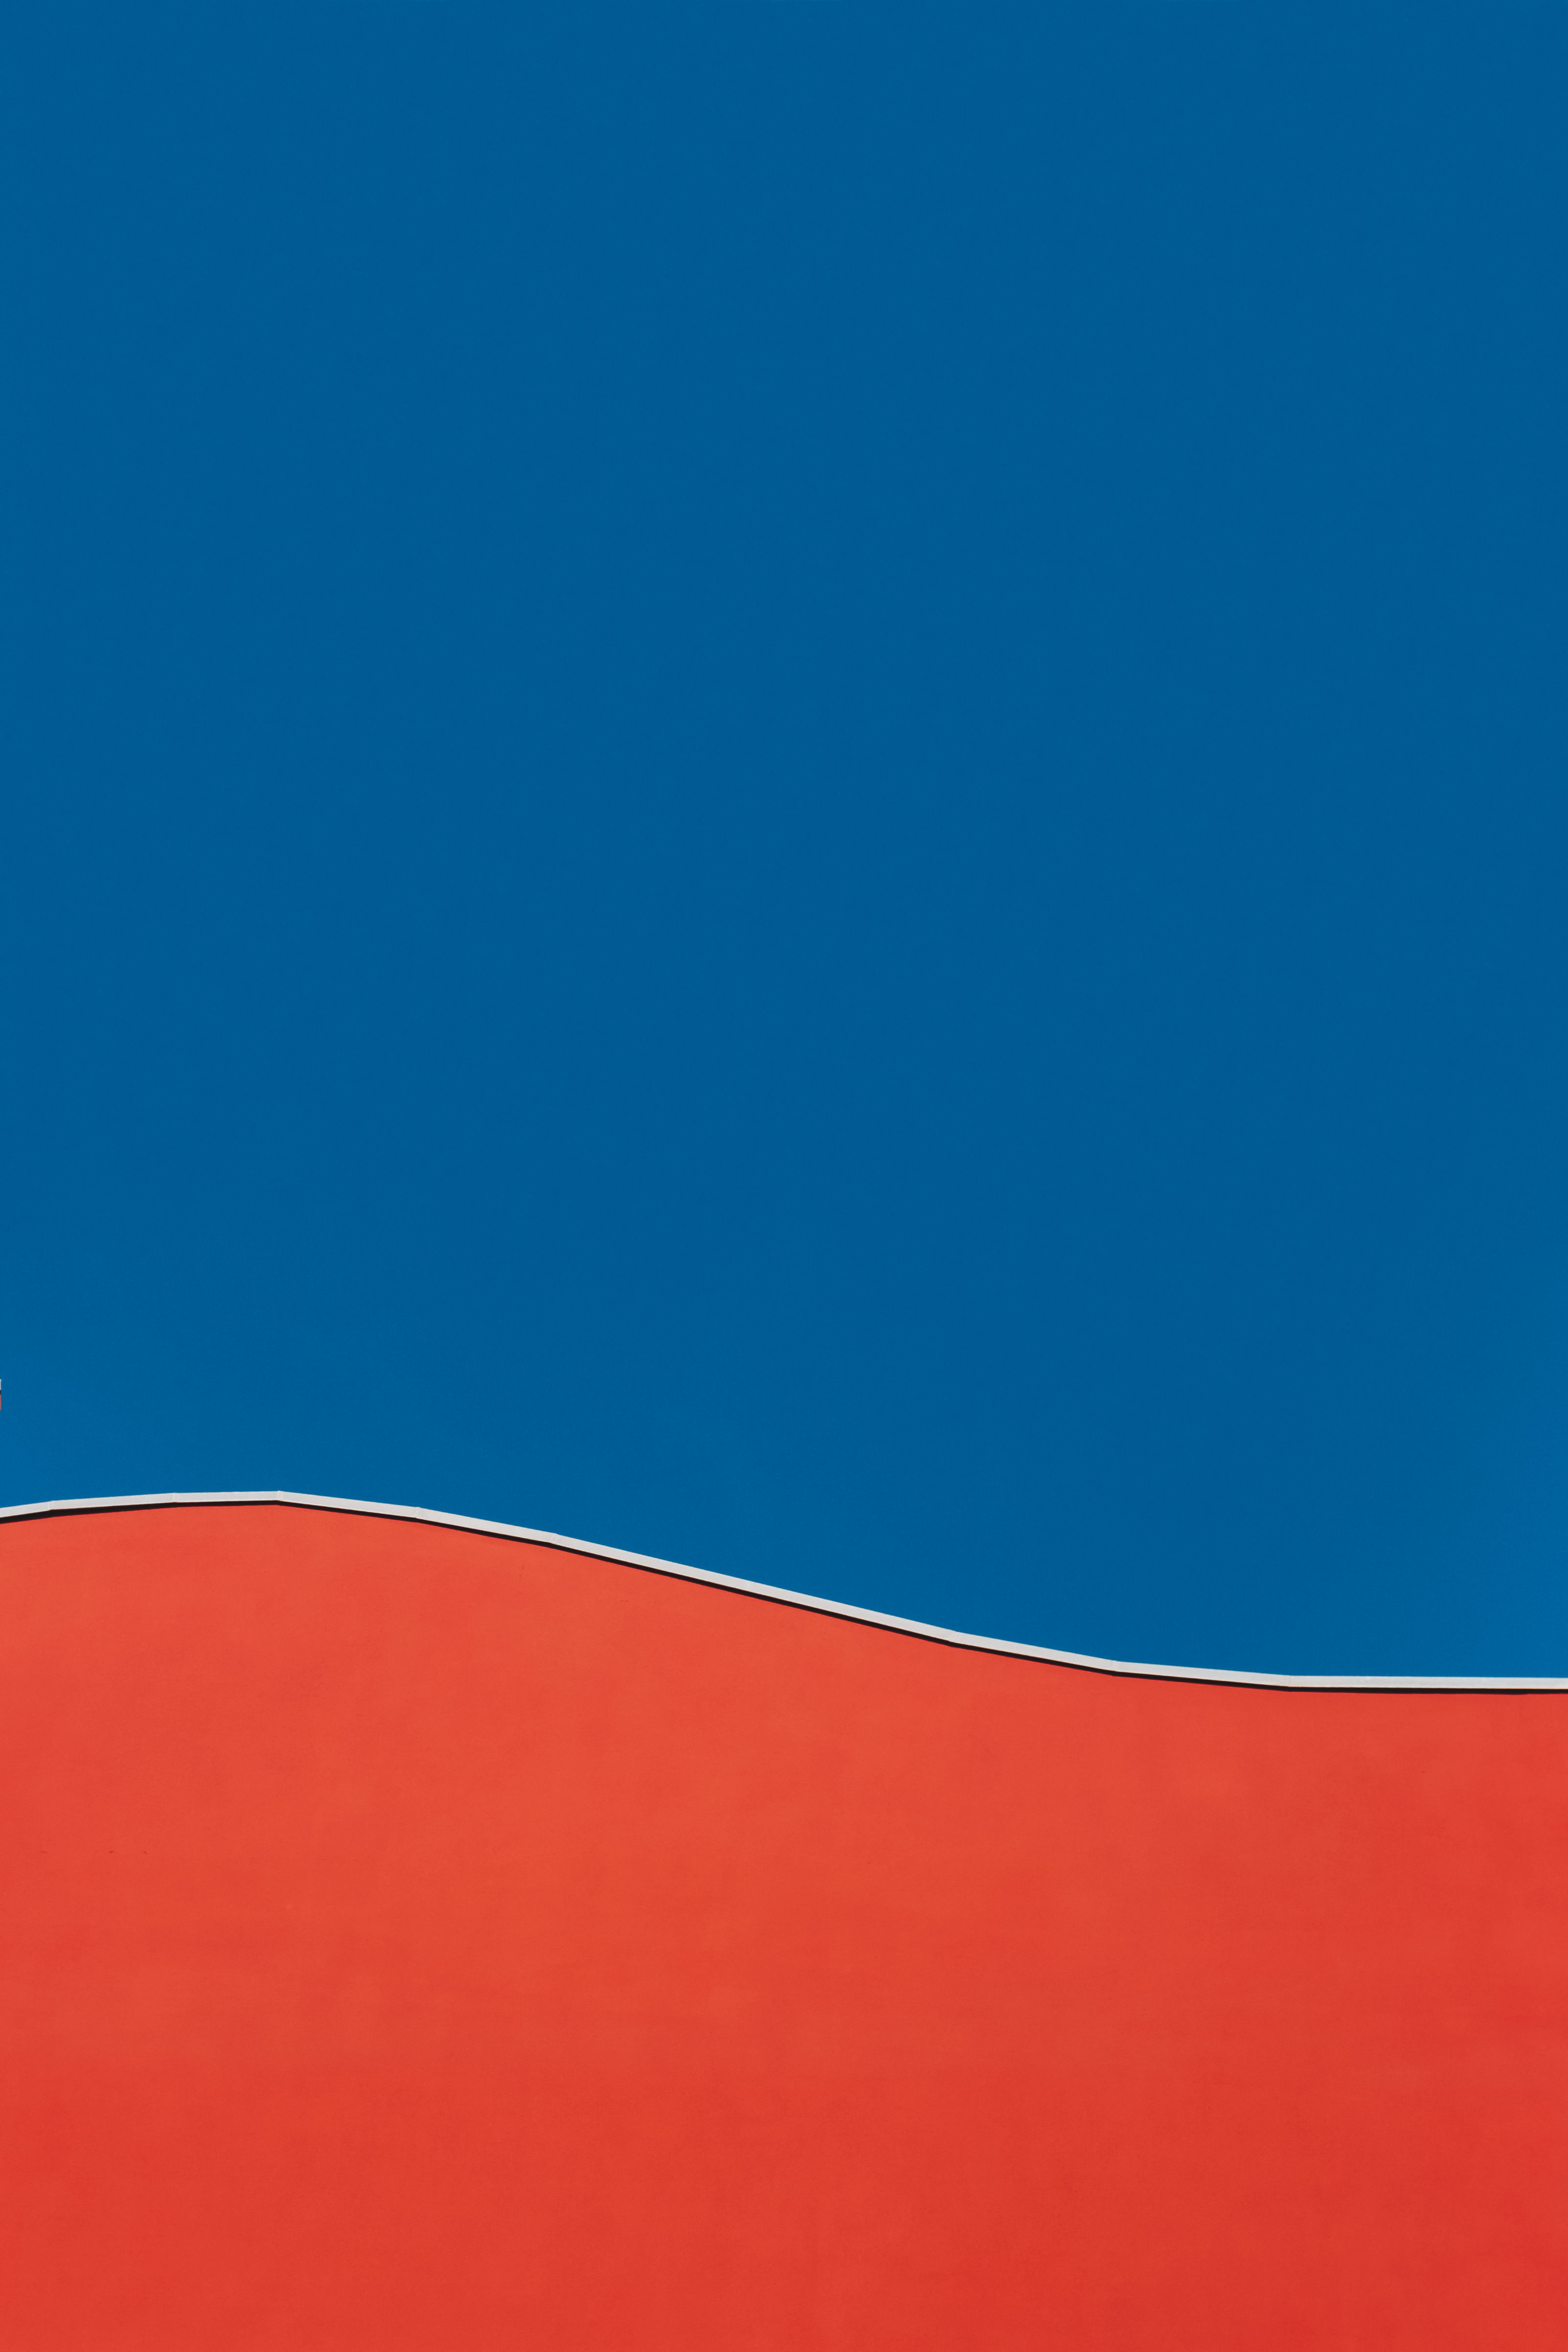 Blue and red illustration photo